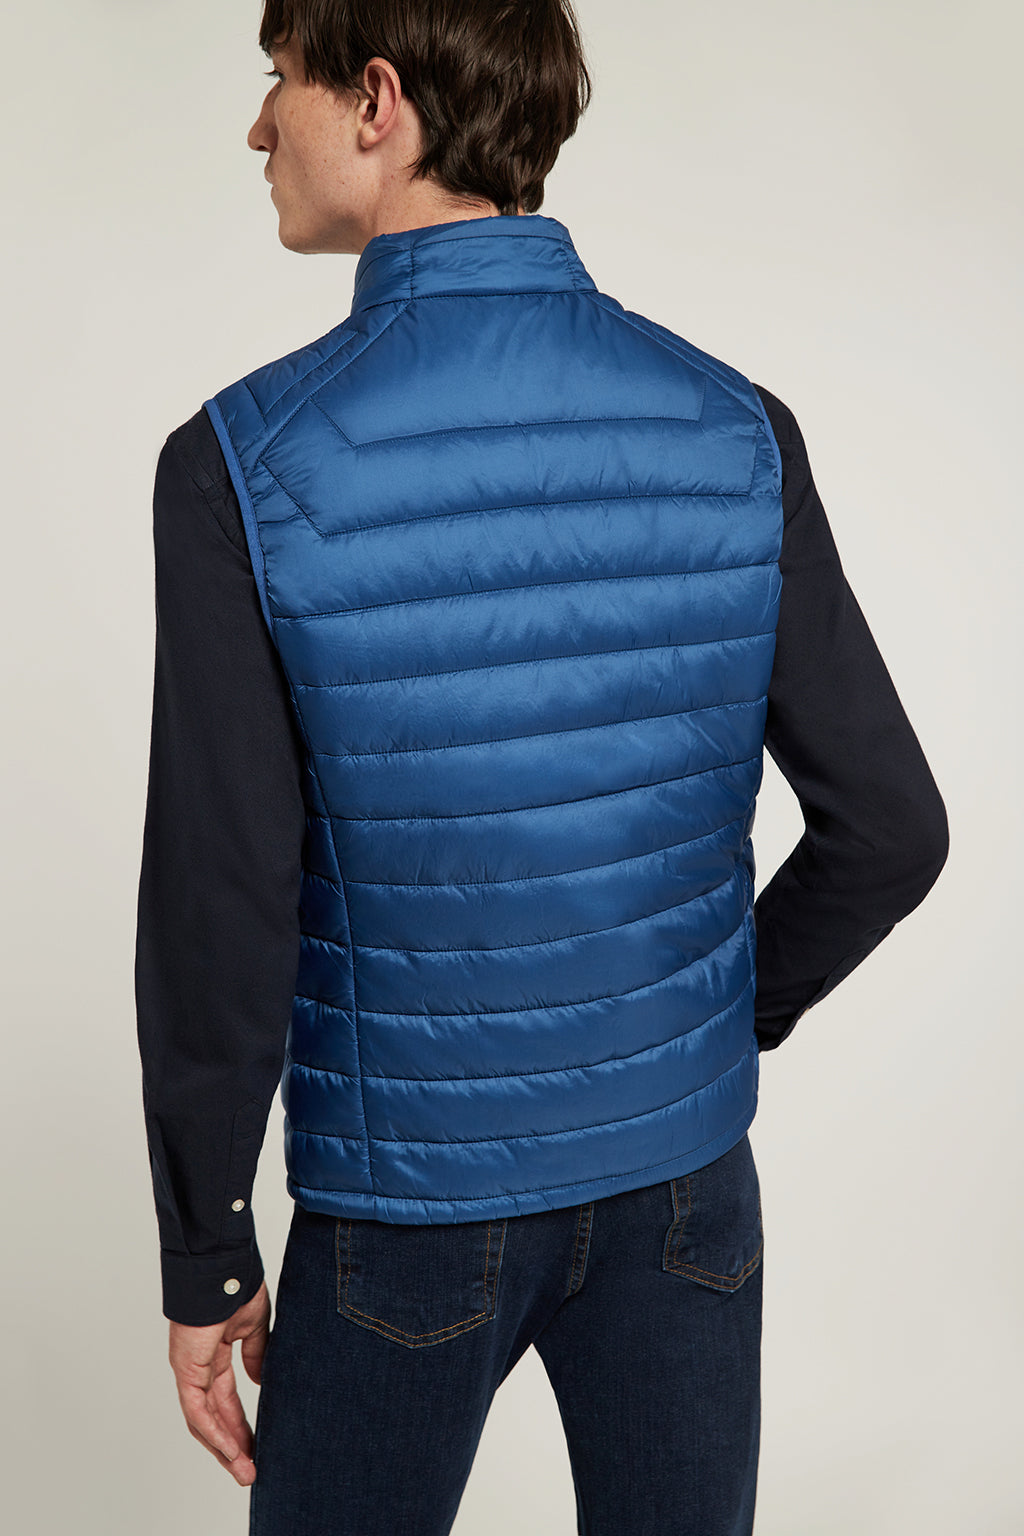 Royal blue quilted vest with high collar